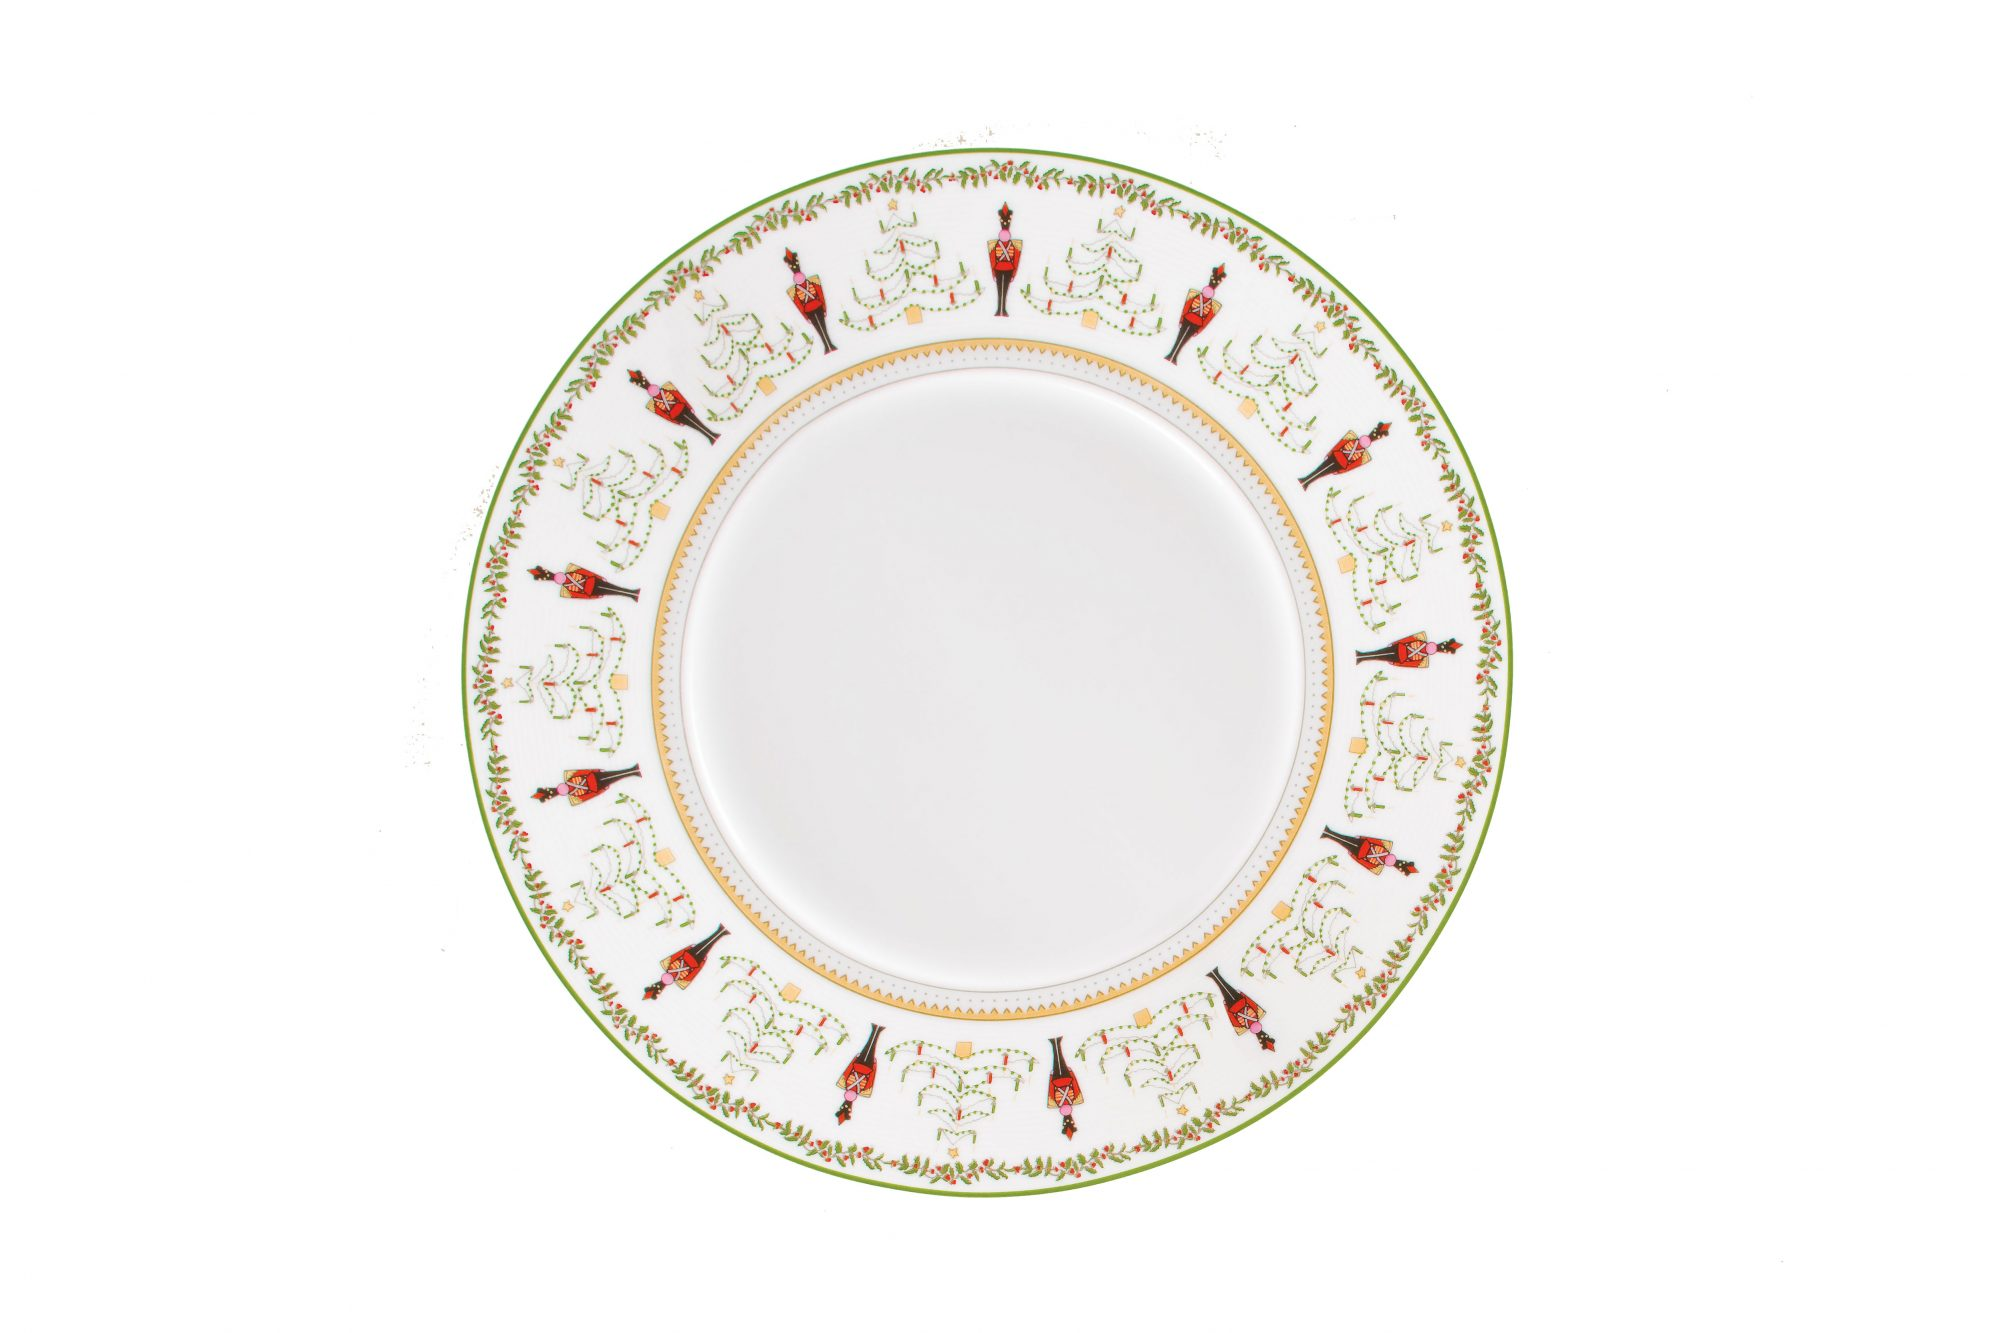 Grenadiers Christmas China